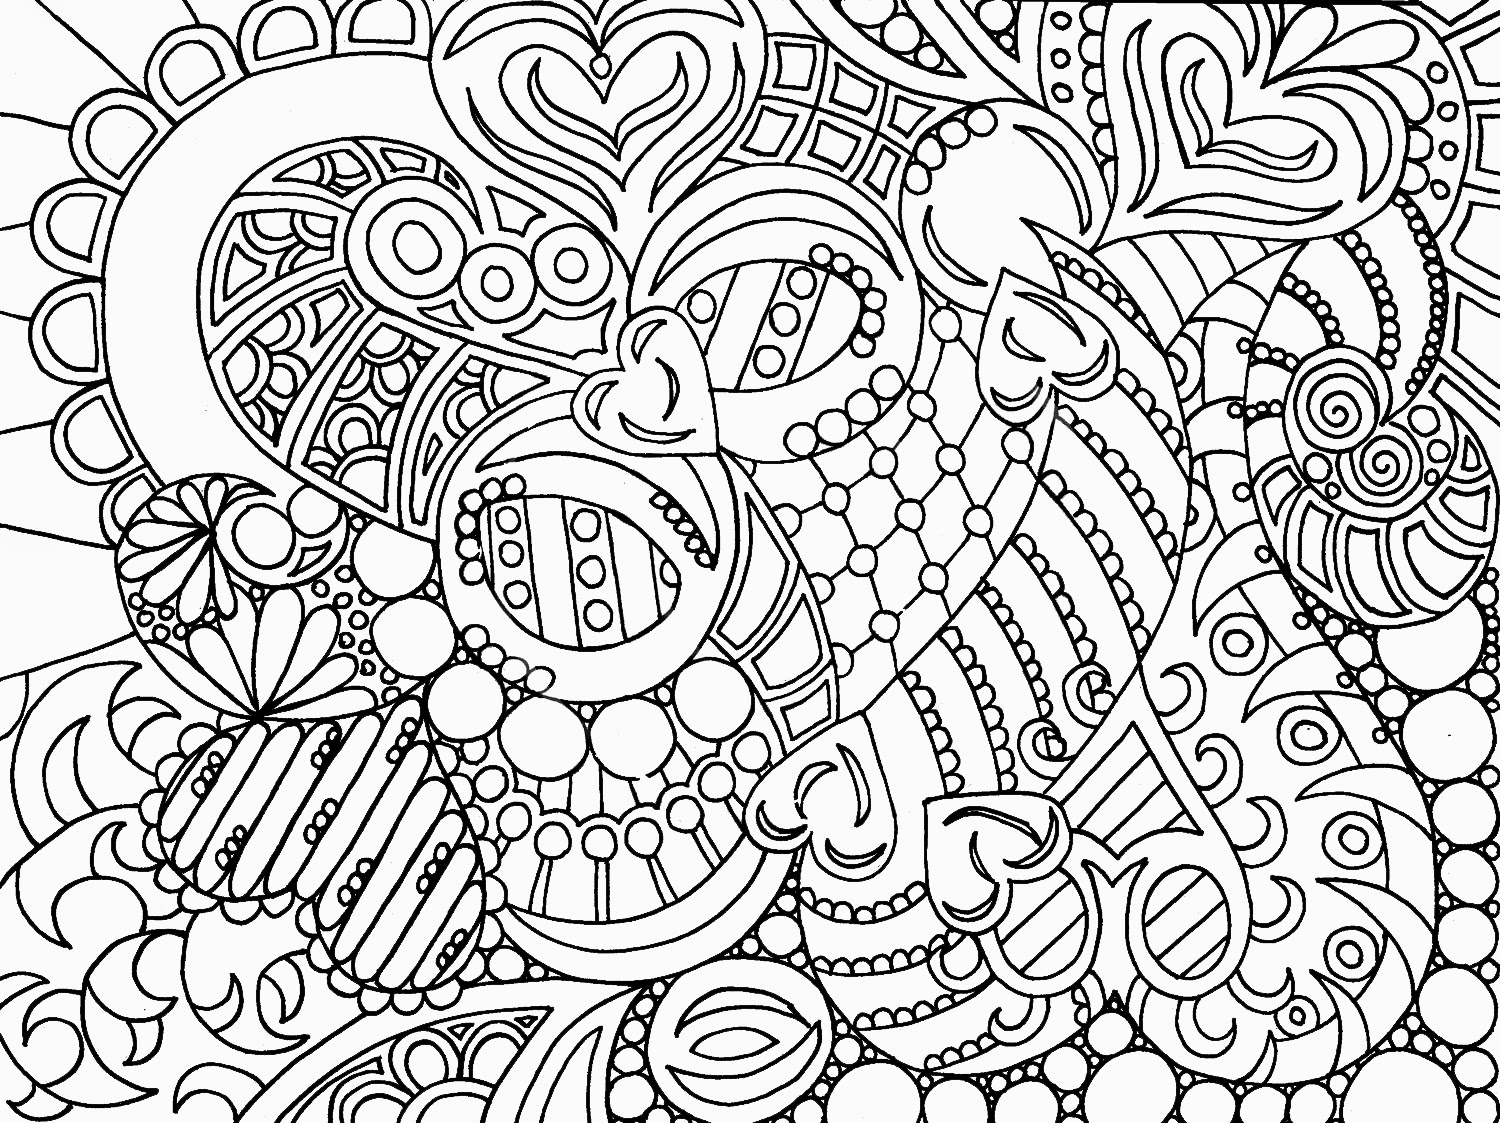 Coloring pages 8 1 2 x 11 - 8 X 11 Christmas Coloring Pages Abstract Colouring Pages